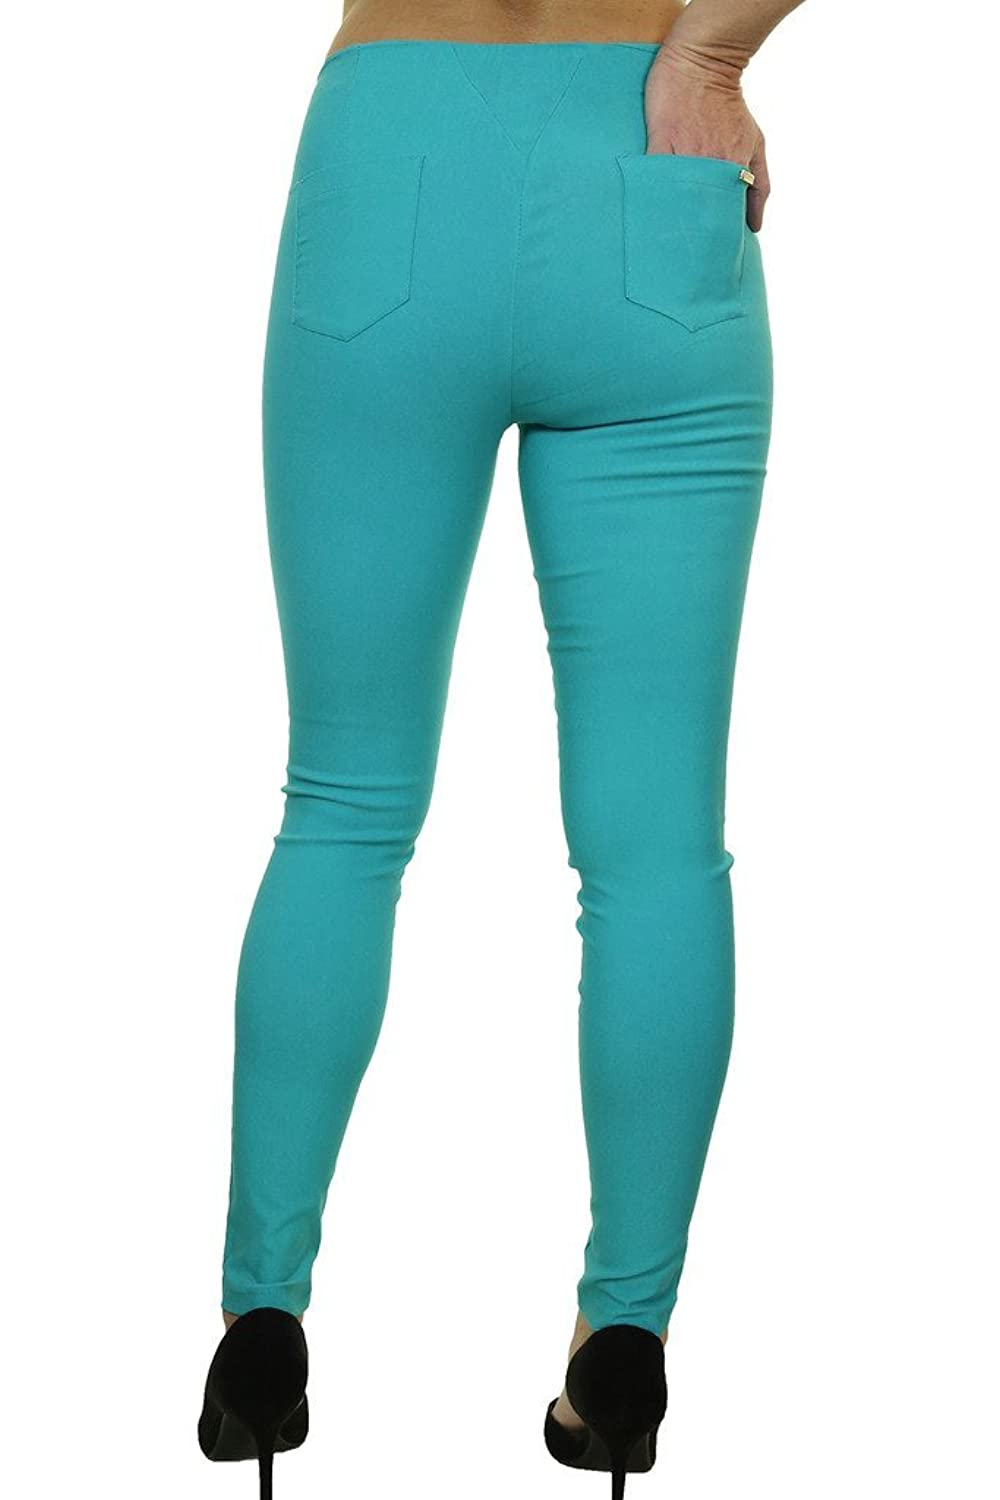 ICE (1499-6) Stretch Super Skinny Pants Front Zips Detail Teal Green